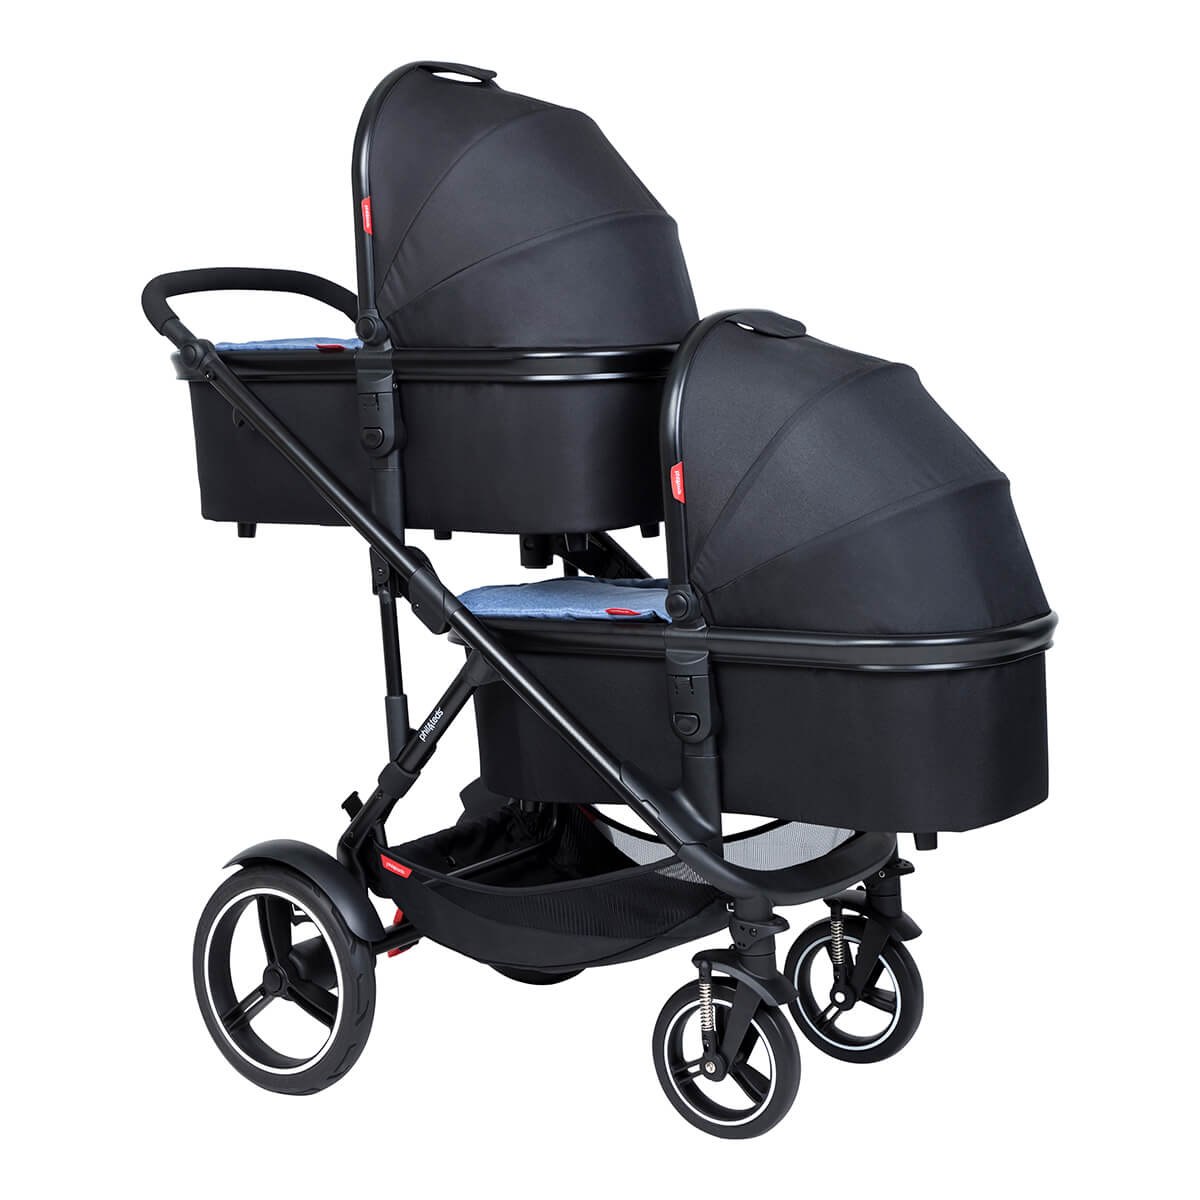 https://cdn.accentuate.io/4546159280233/19119322923113/philteds-voyager-inline-buggy-with-double-snug-carrycots-v1625778581281.jpg?1200x1200